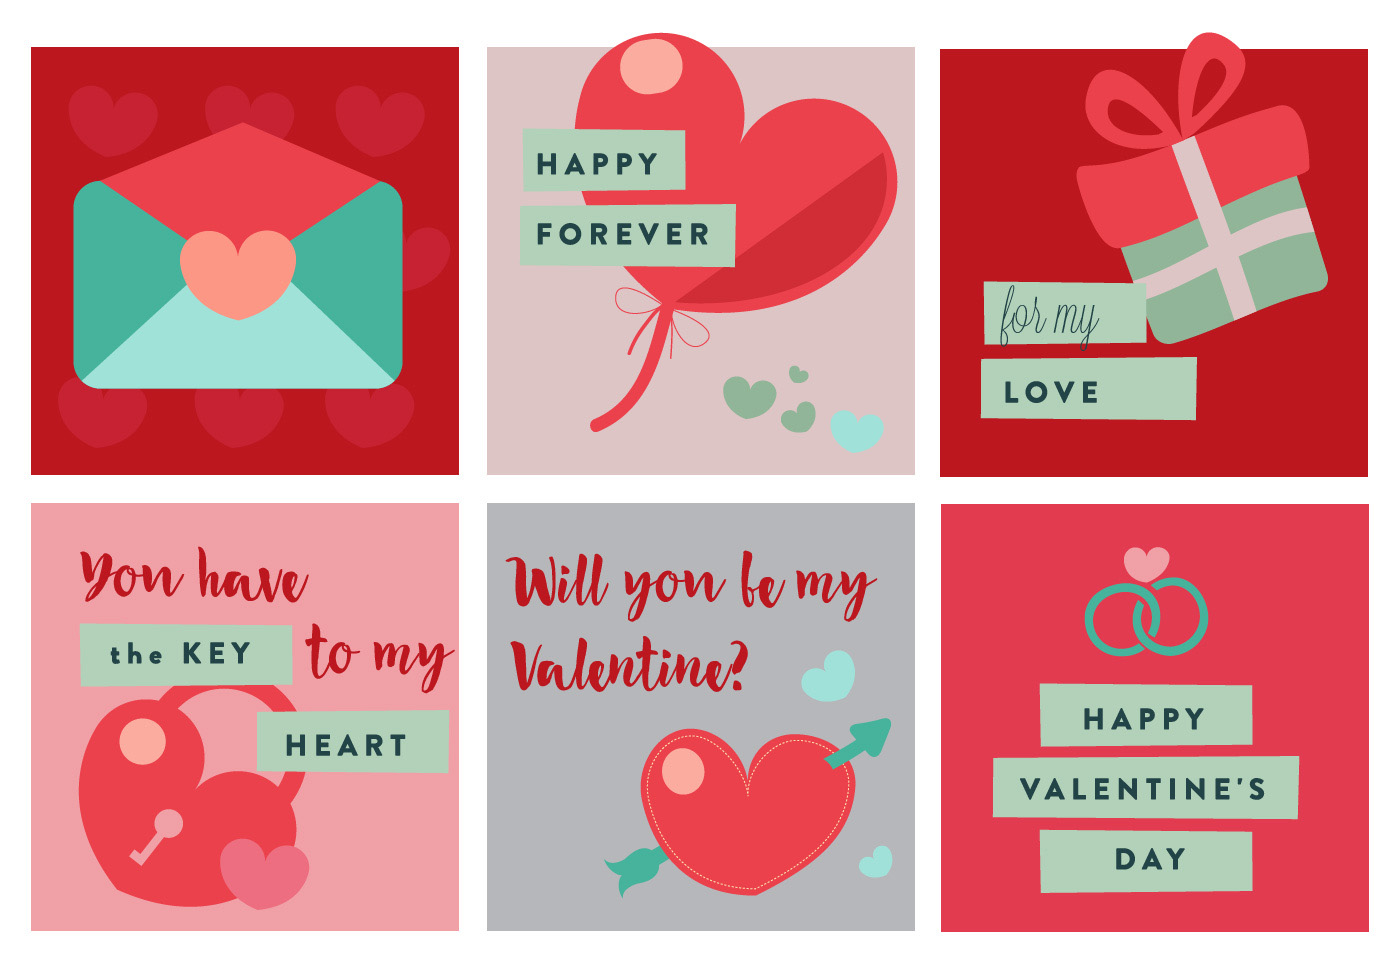 Valentine's Day Vector Elements And Icons - Download Free Vector Art ...